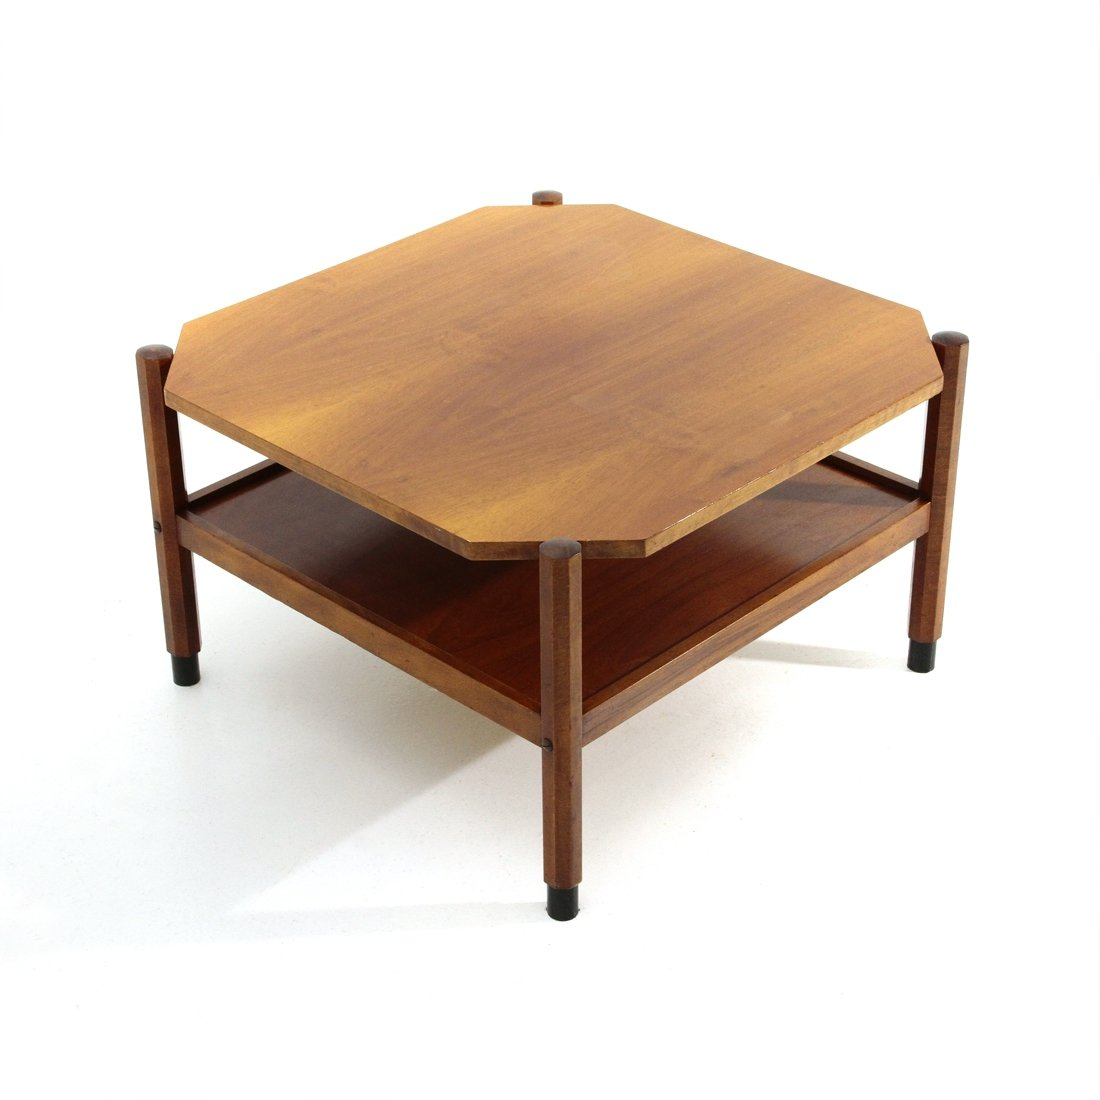 Picture of: Midcentury Square Teak Coffee Table 1960s 116132